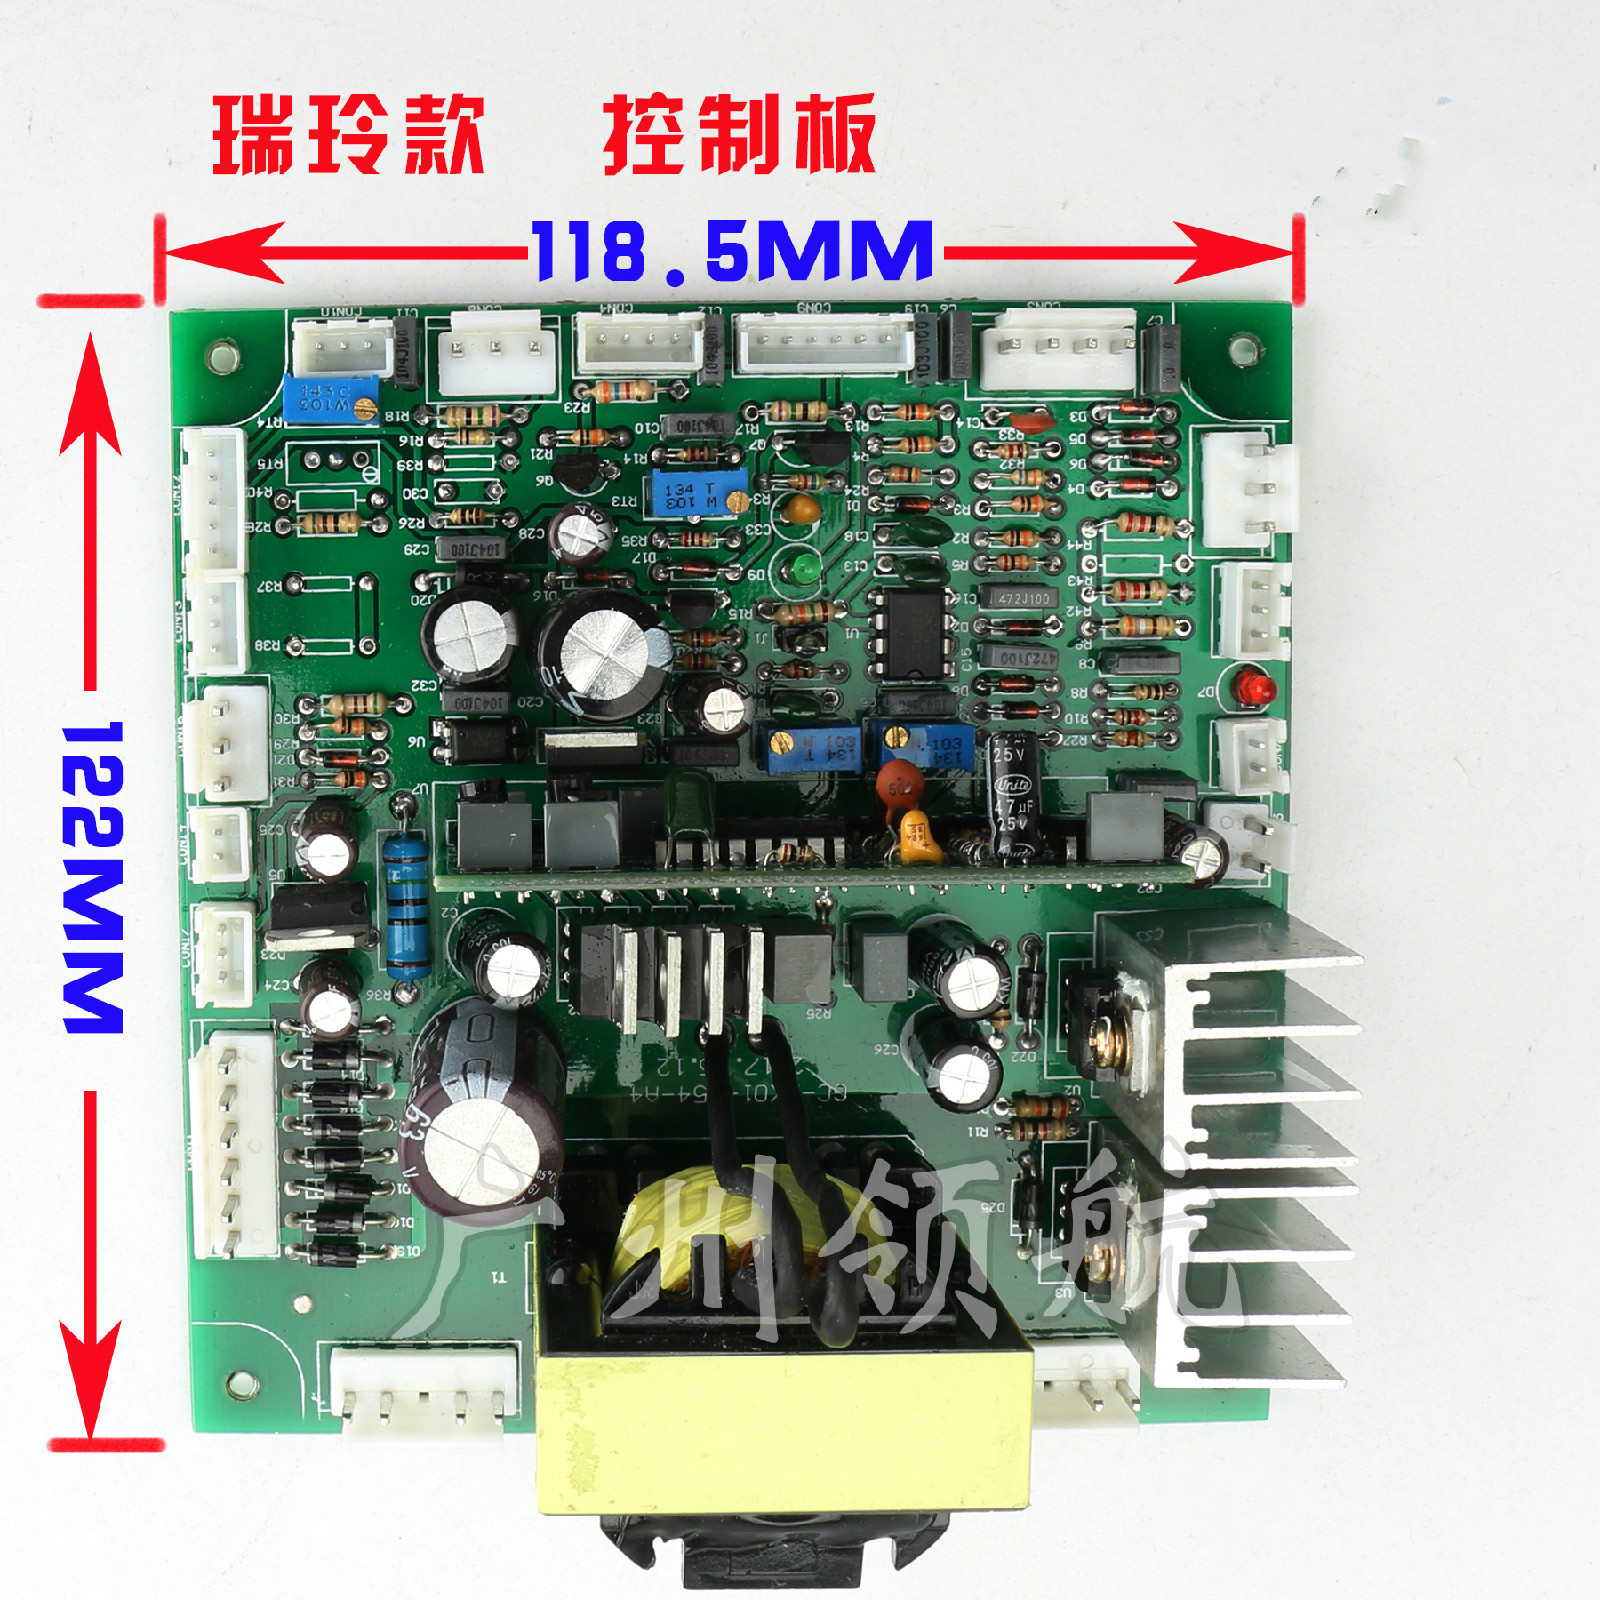 Home Appliances Zx7-400 Single Igbt Welder Control Panel Reallink Section Single Tube Zx7-400 Control Circuit Board At Any Cost